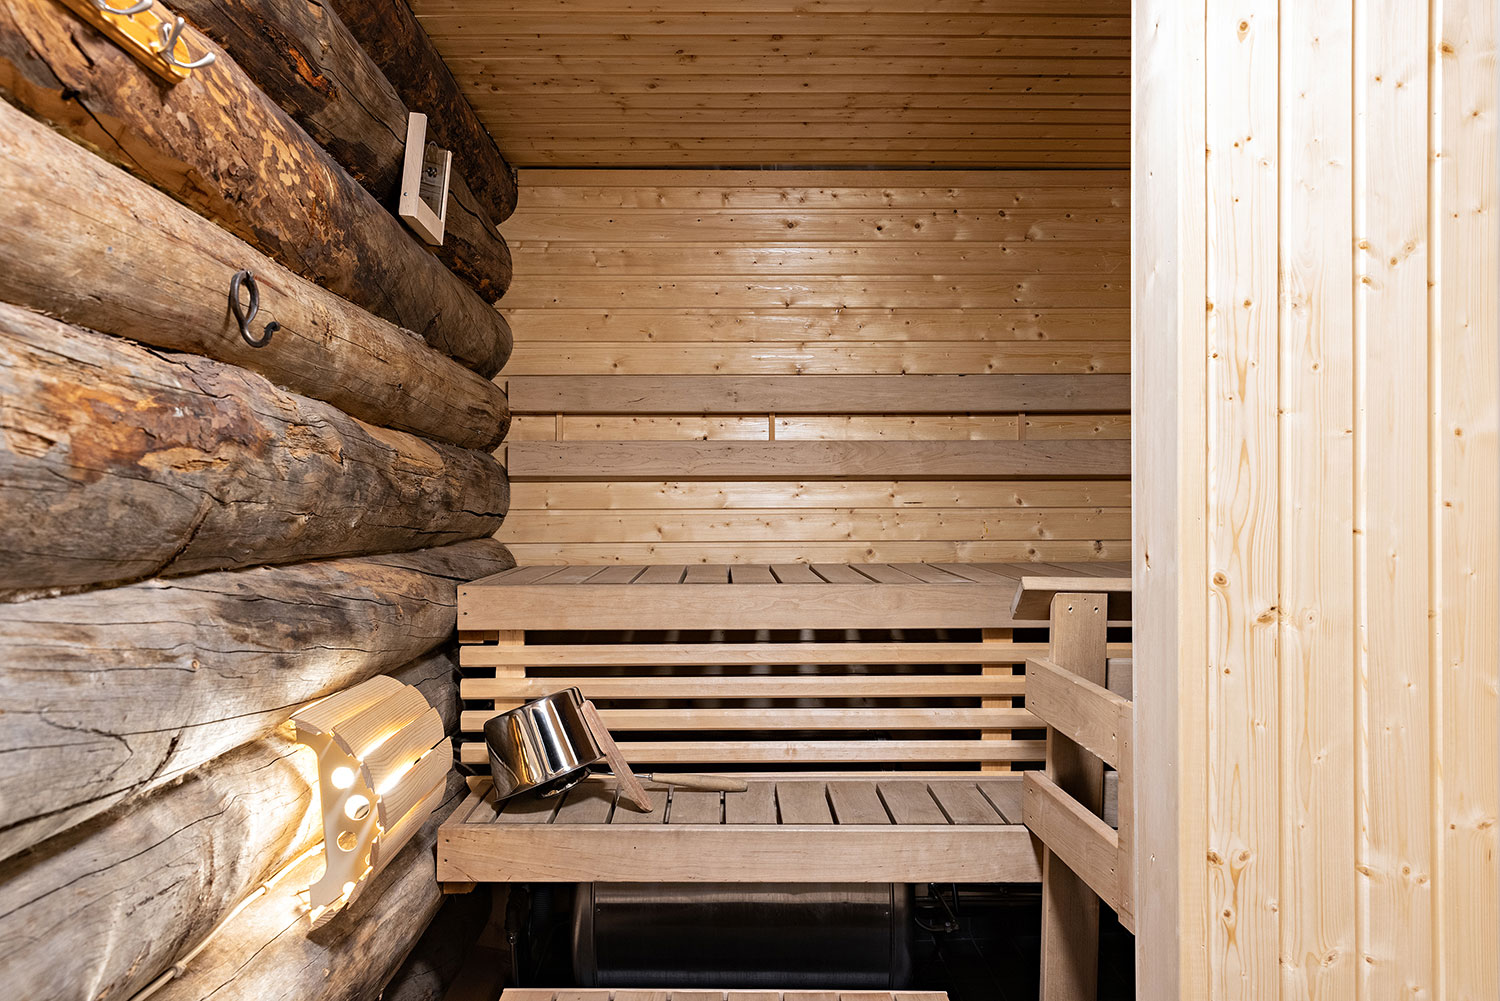 Enjoy the warmth of the traditional Finnish sauna.